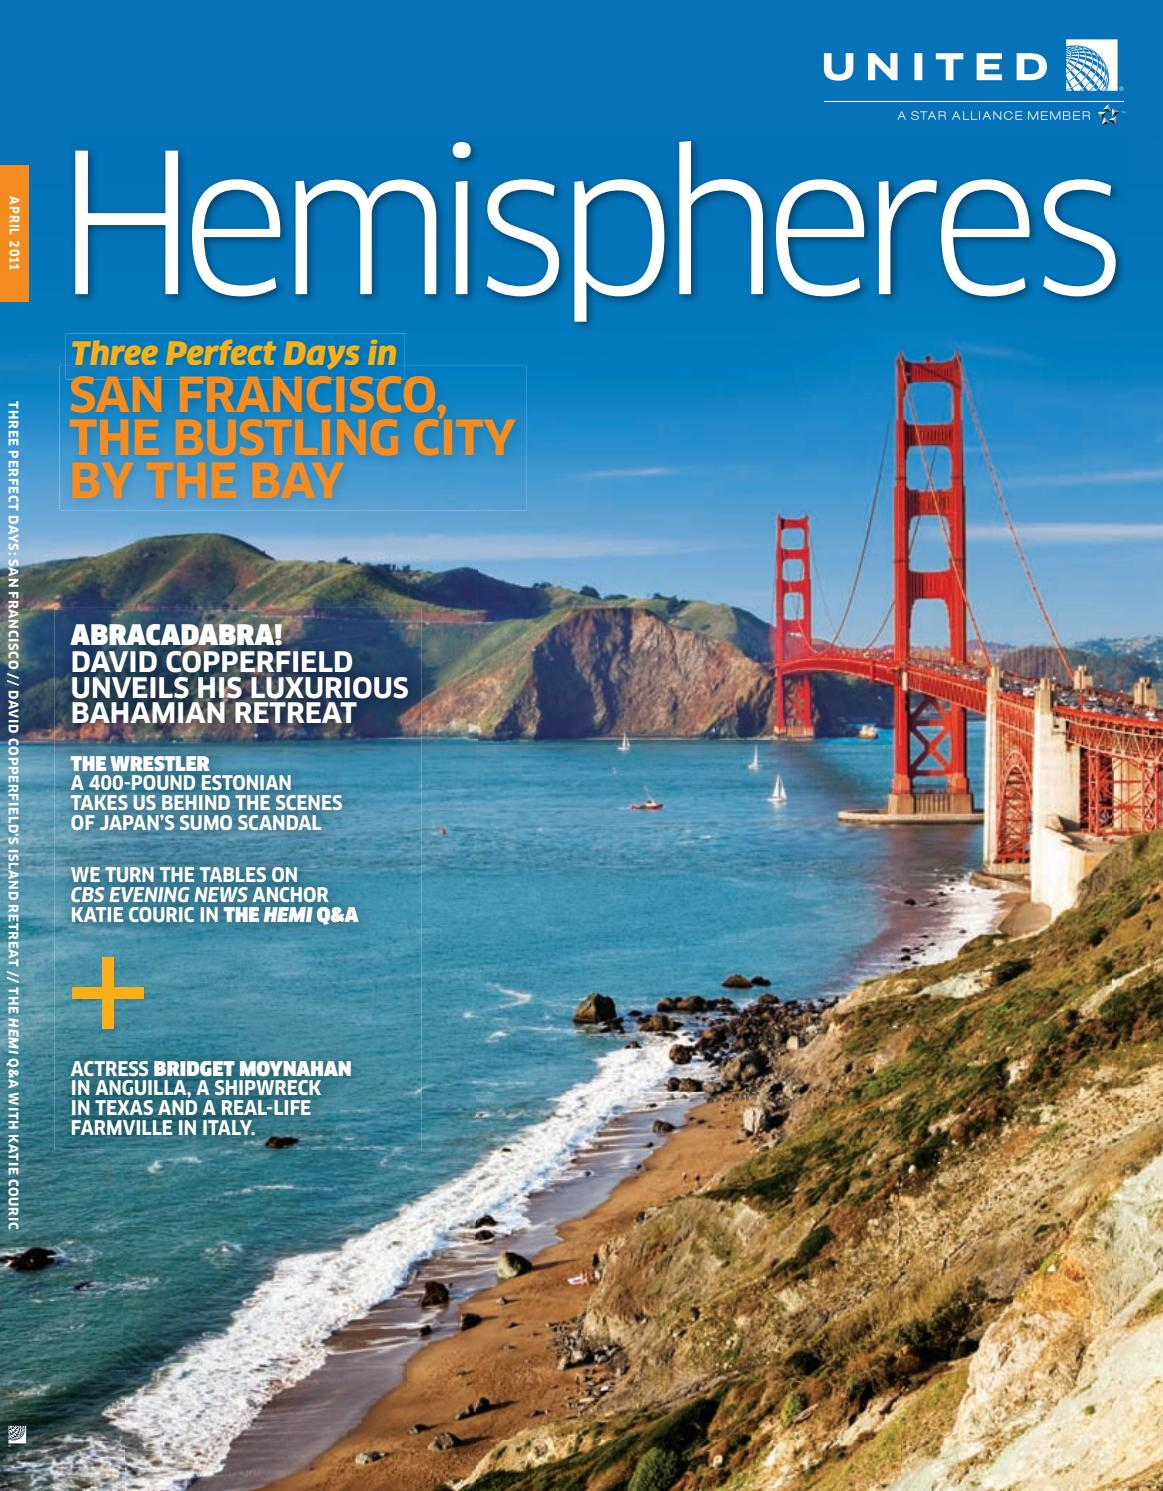 United Airlines Hemispheres Magazine April 2011 By Ahmed